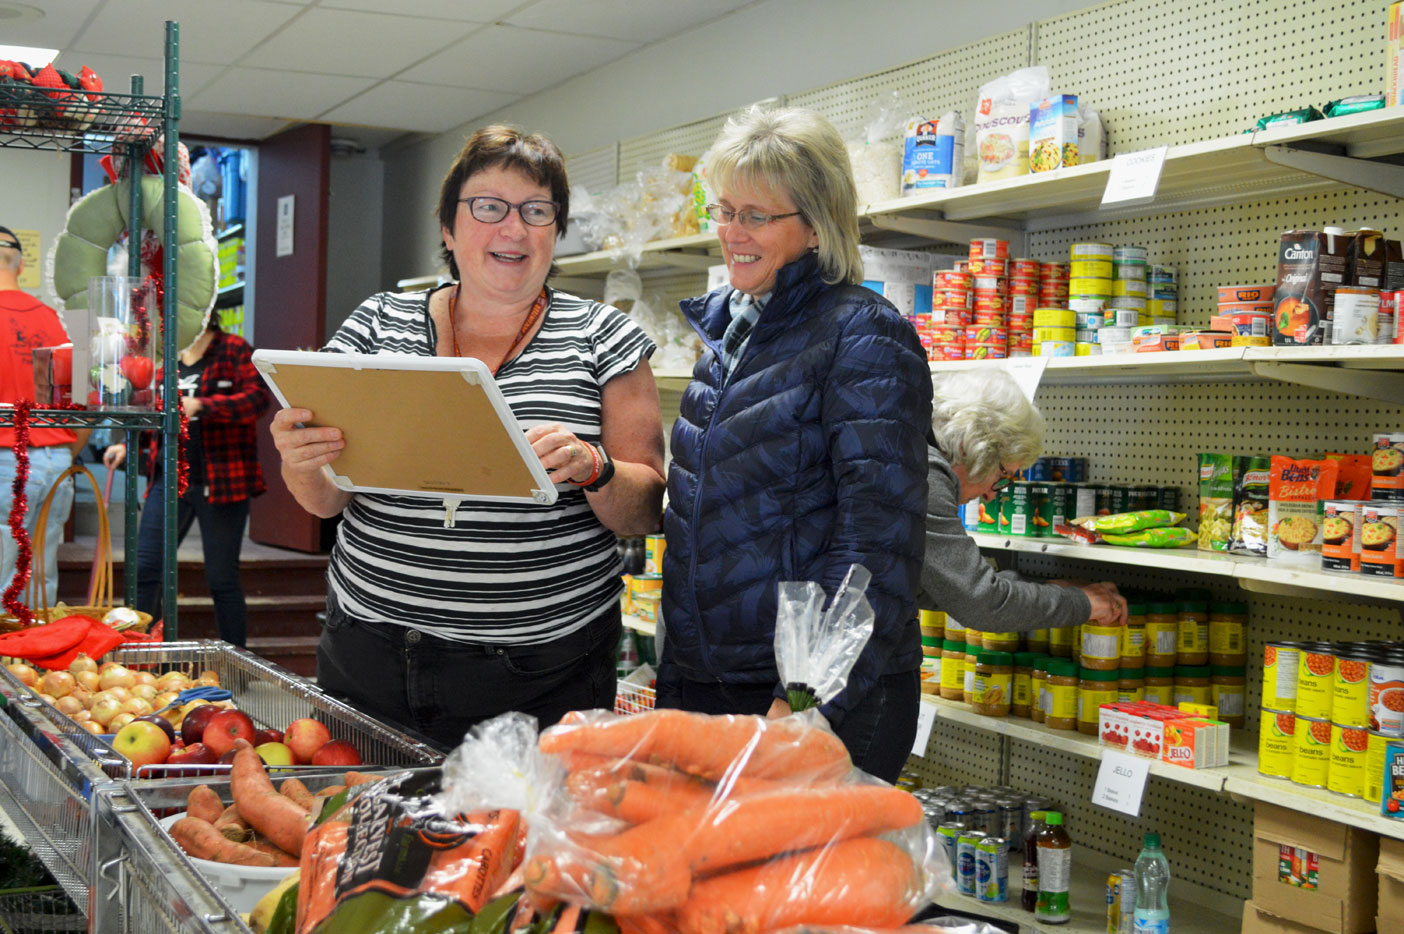 Can't you tell that Barb Stronach (left) and Elaine Super love what they do? Volunteering at the food bank gives them something to smile about. They're helping to make a difference in the lives of those who are less fortunate.